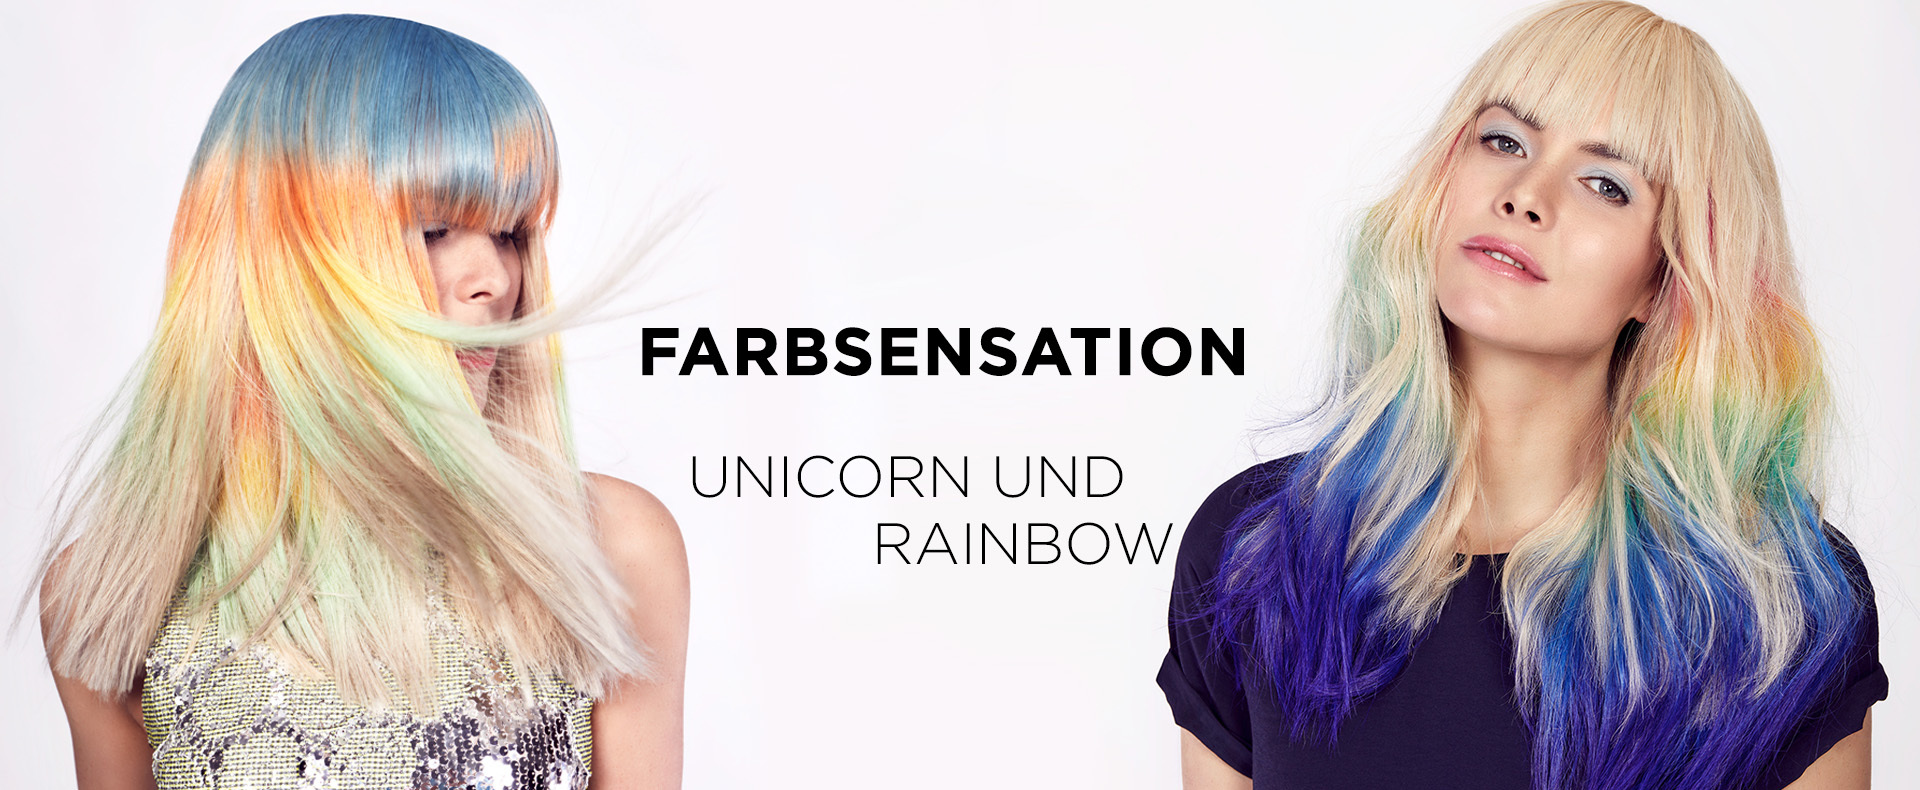 Farbsensation Rainbow und Unicorn (© Great Lengths)